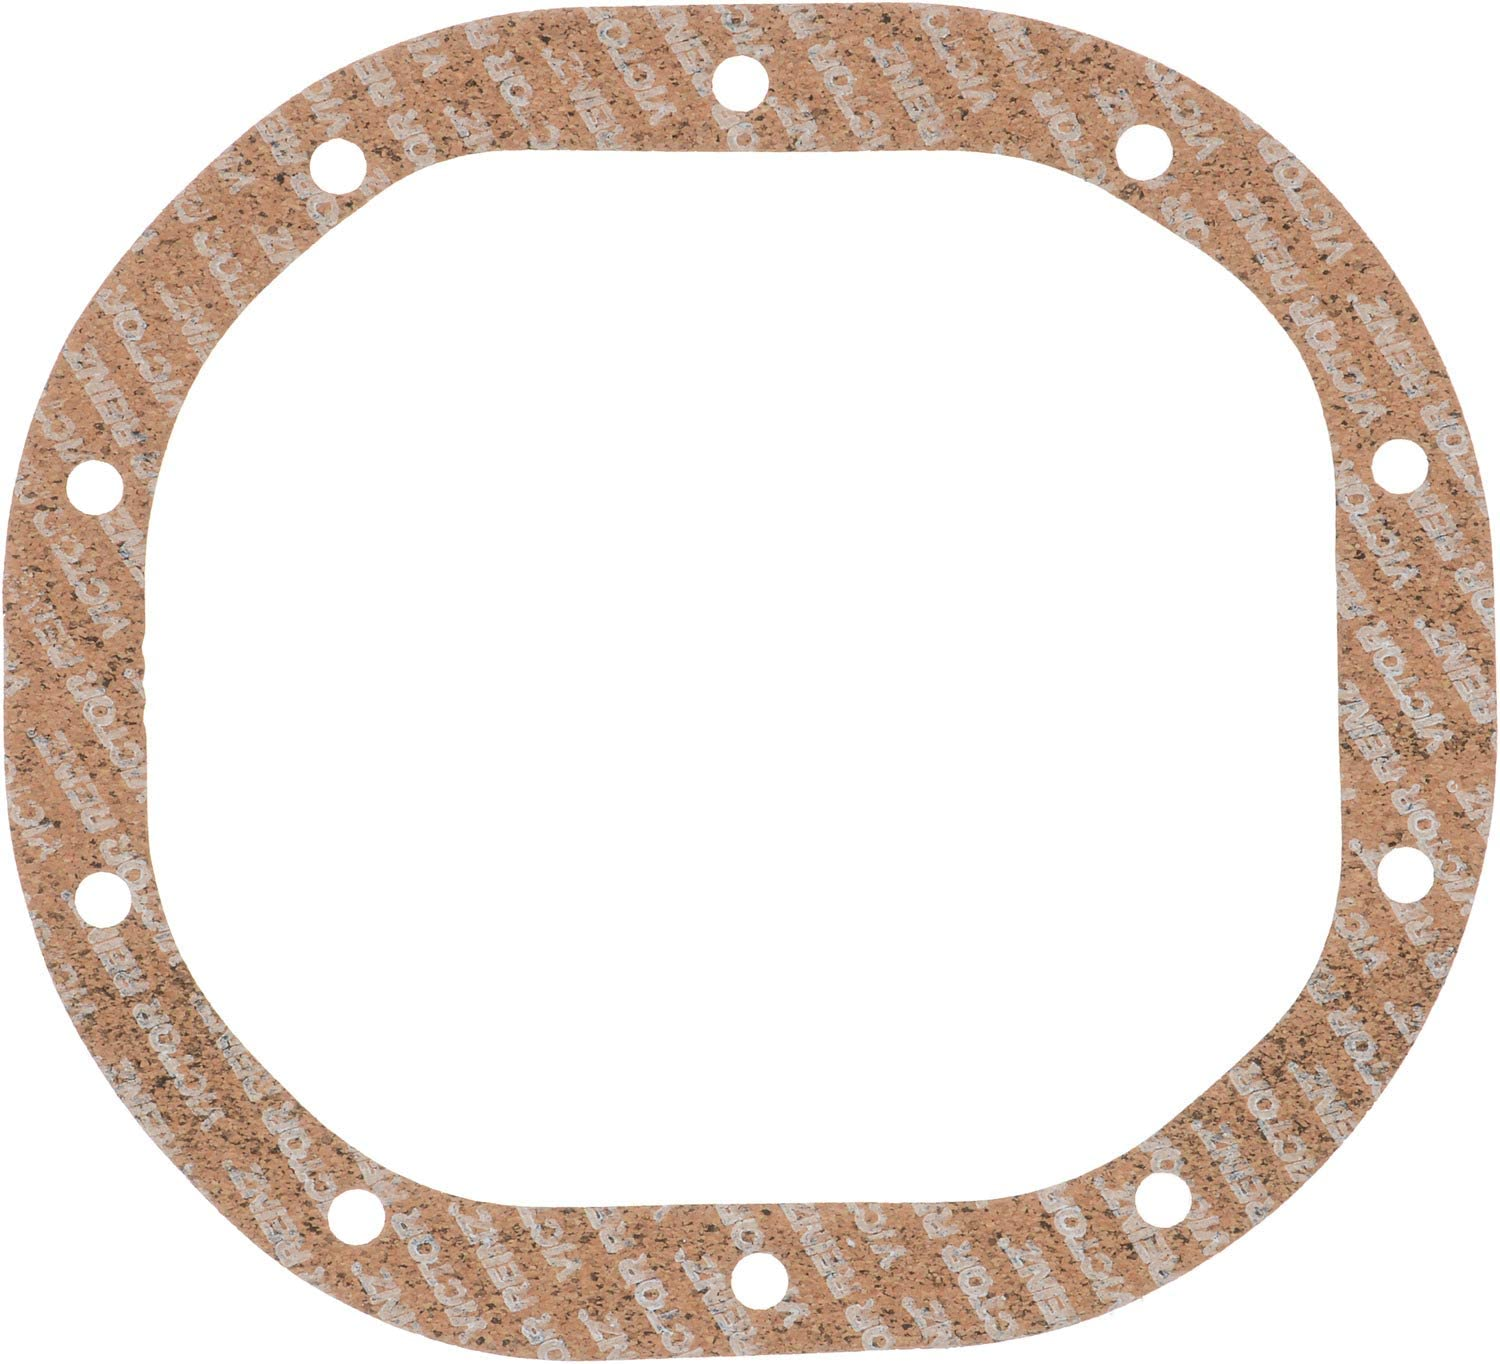 Victor Reinz 71-14838-00 Axle Housing Clearance SALE! Limited time! Gasket Cover Gifts